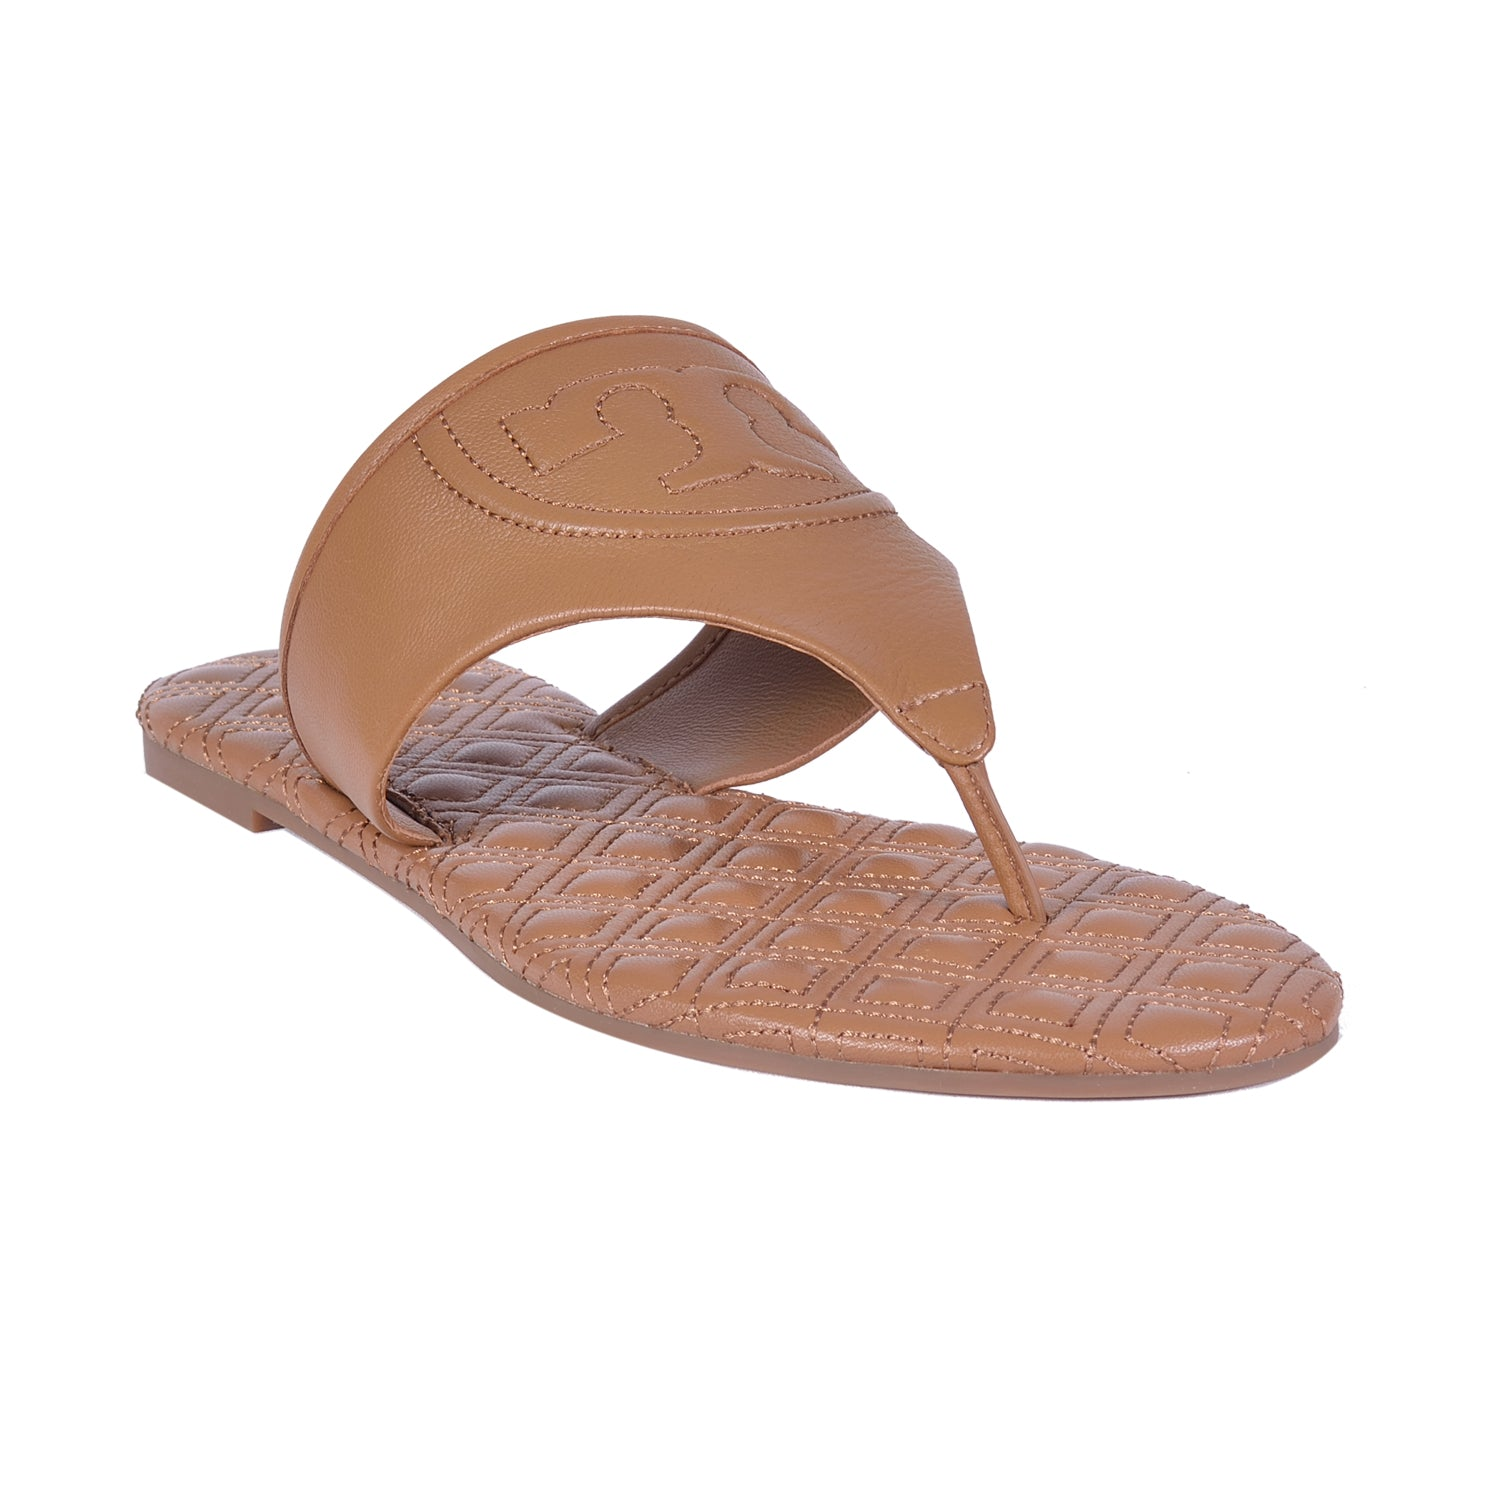 TORY BURCH ROYAL TAN FLEMING SLIDE ESPADRILLE SANDALS